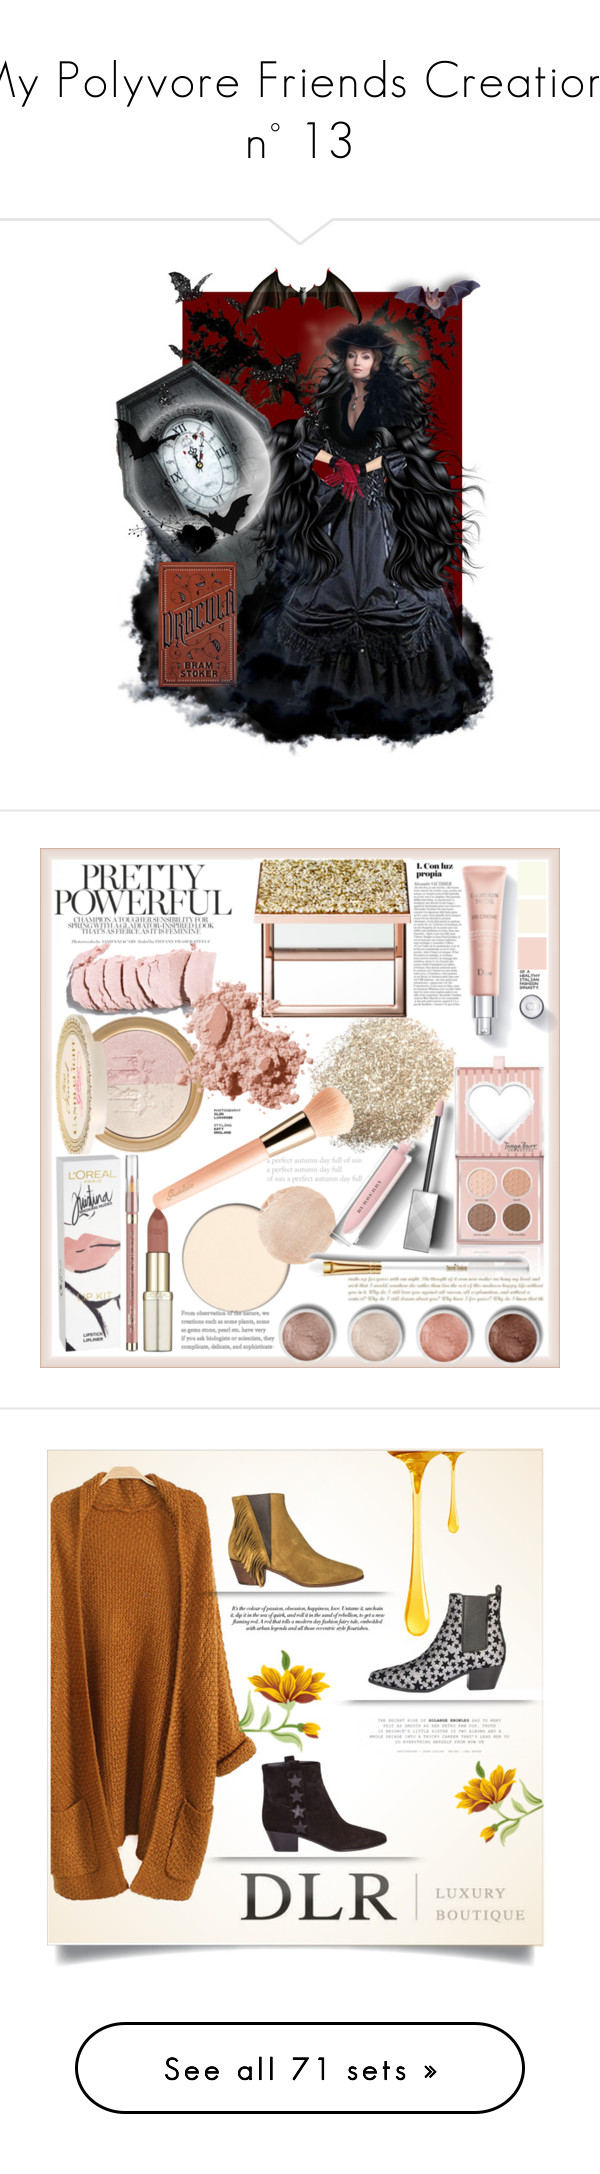 """""""My Polyvore Friends Creations n° 13"""" by tempestaartica ❤ liked on Polyvore featuring art, literarycharacter, beauty, Power of Makeup, L'Oréal Paris, Wander Beauty, Burberry, Guerlain, Sephora Collection and Bobbi Brown Cosmetics"""